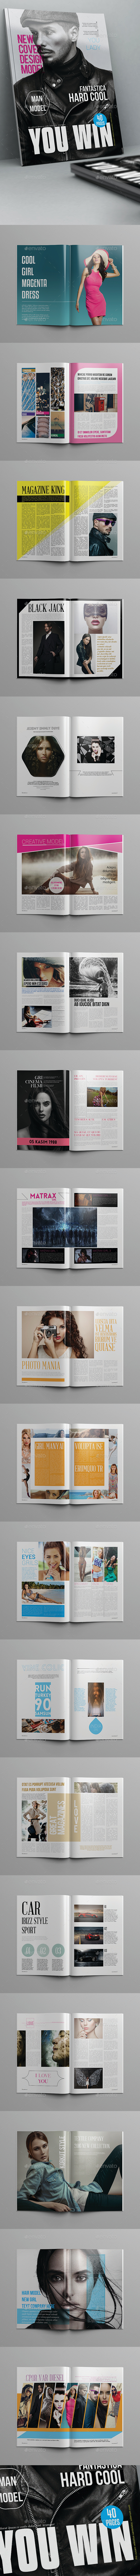 Win Magazine Template 40 Pages - Magazines Print Templates